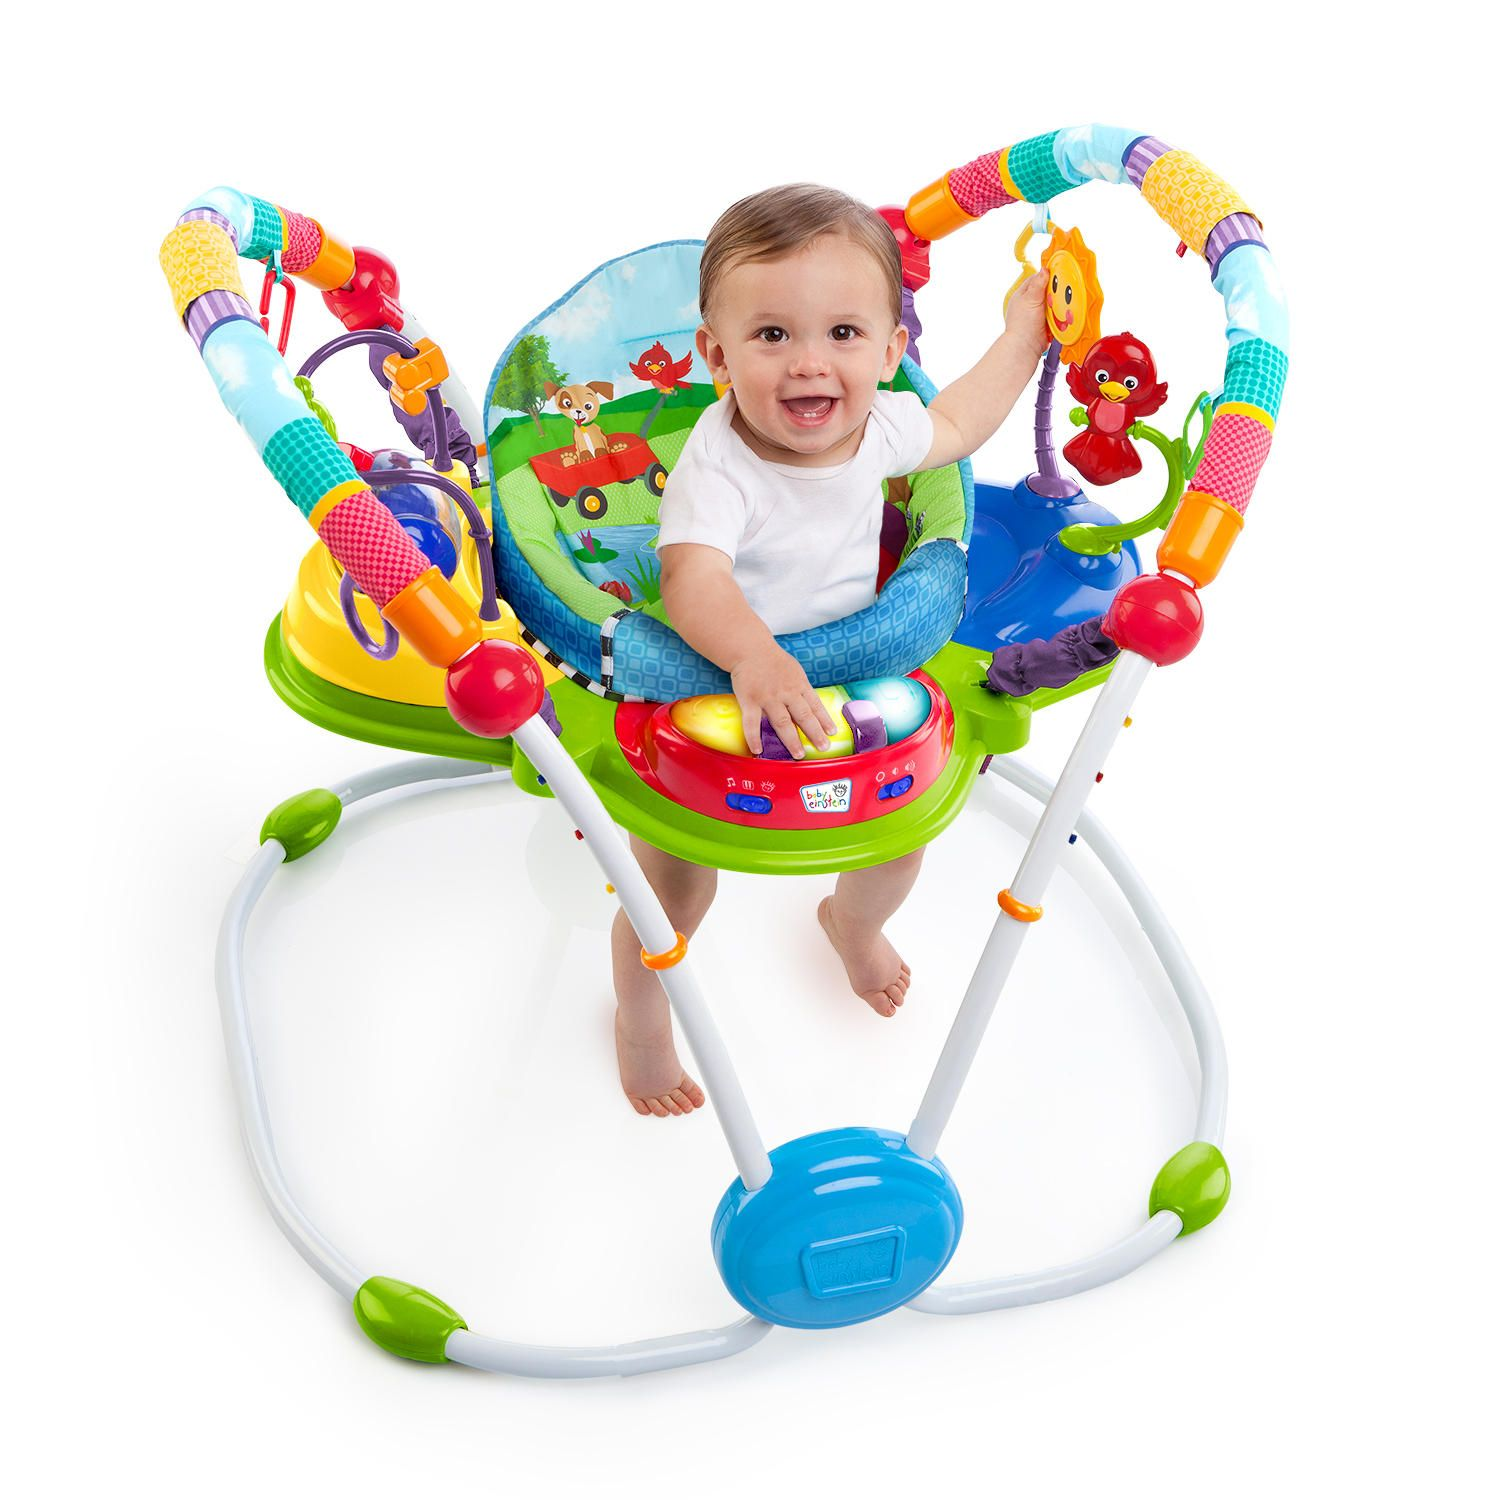 Baby Einstein Neighborhood Friends Activity Jumper Walmart Com  ~ Manta Actividades Bebe El Corte Ingles